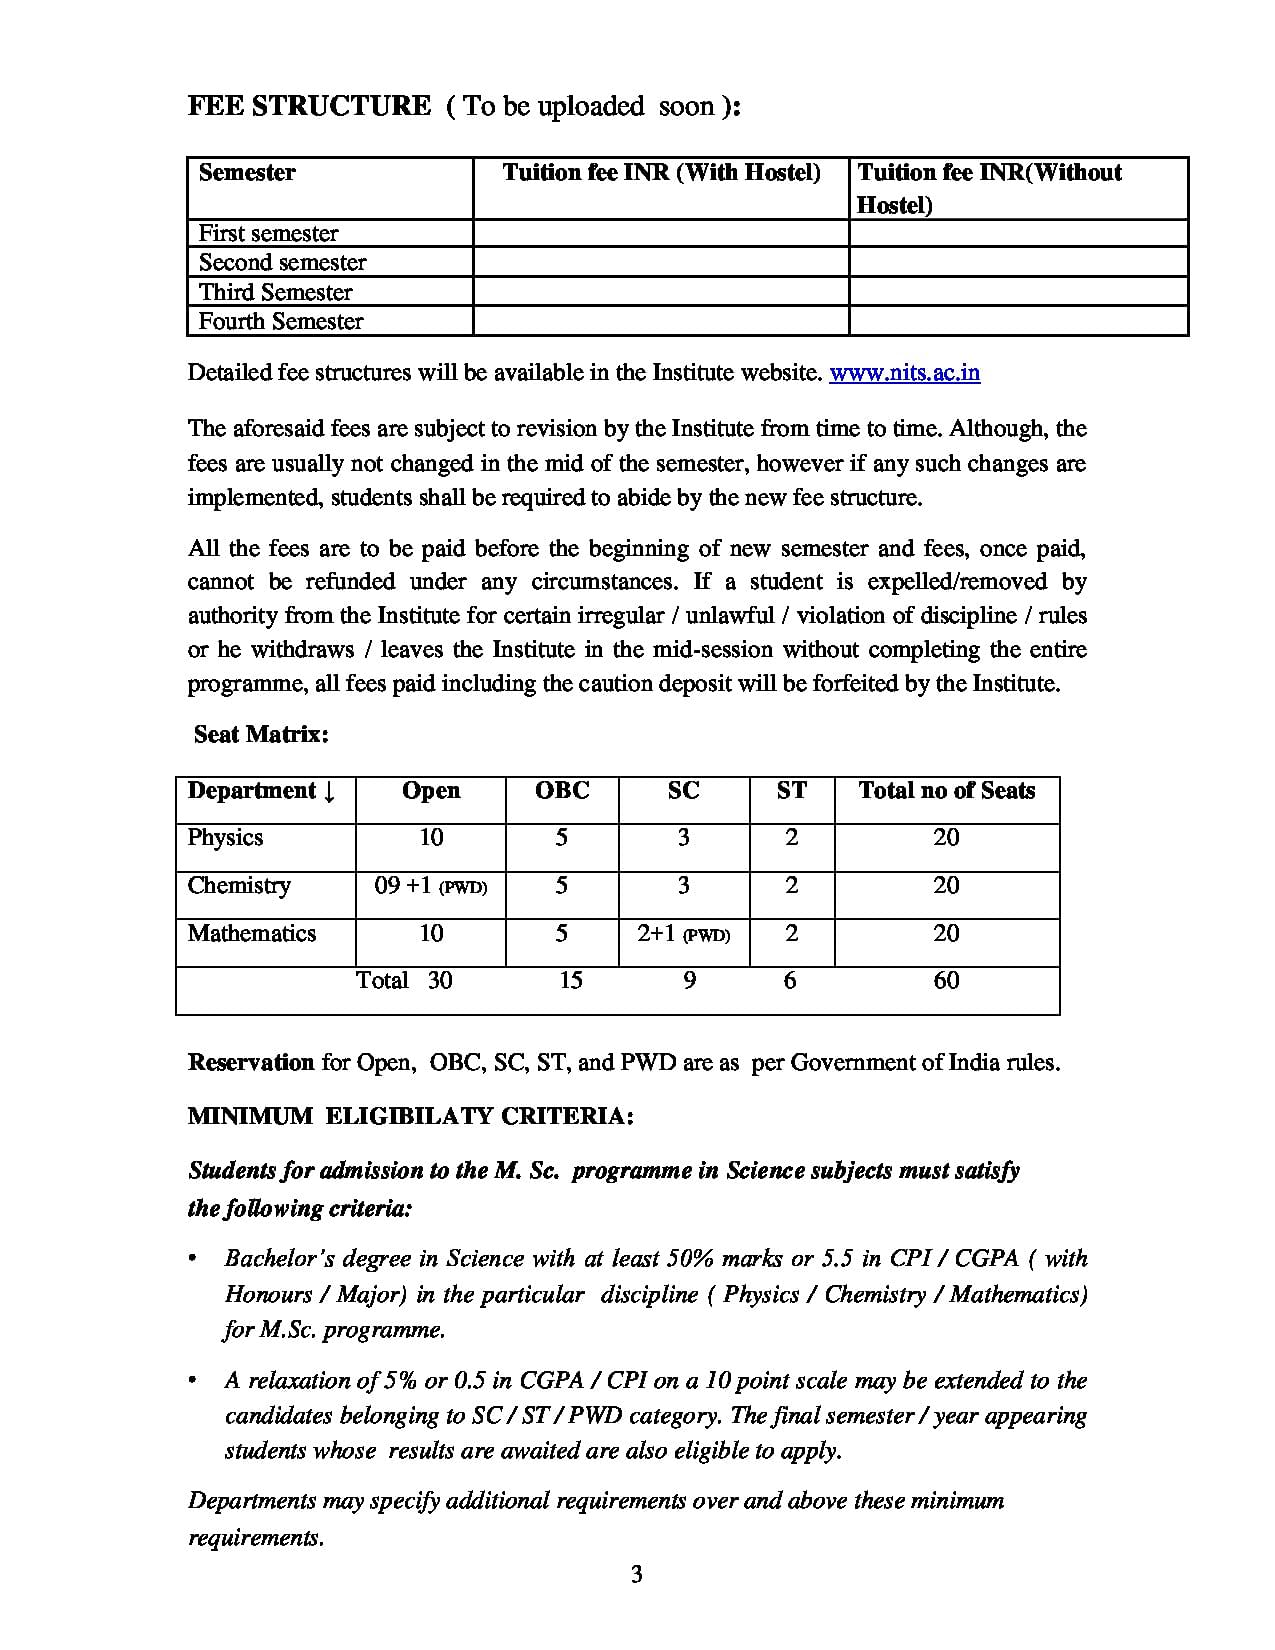 NIT Silchar - Admissions, Courses, Fees, Placements, Cutoff 2019